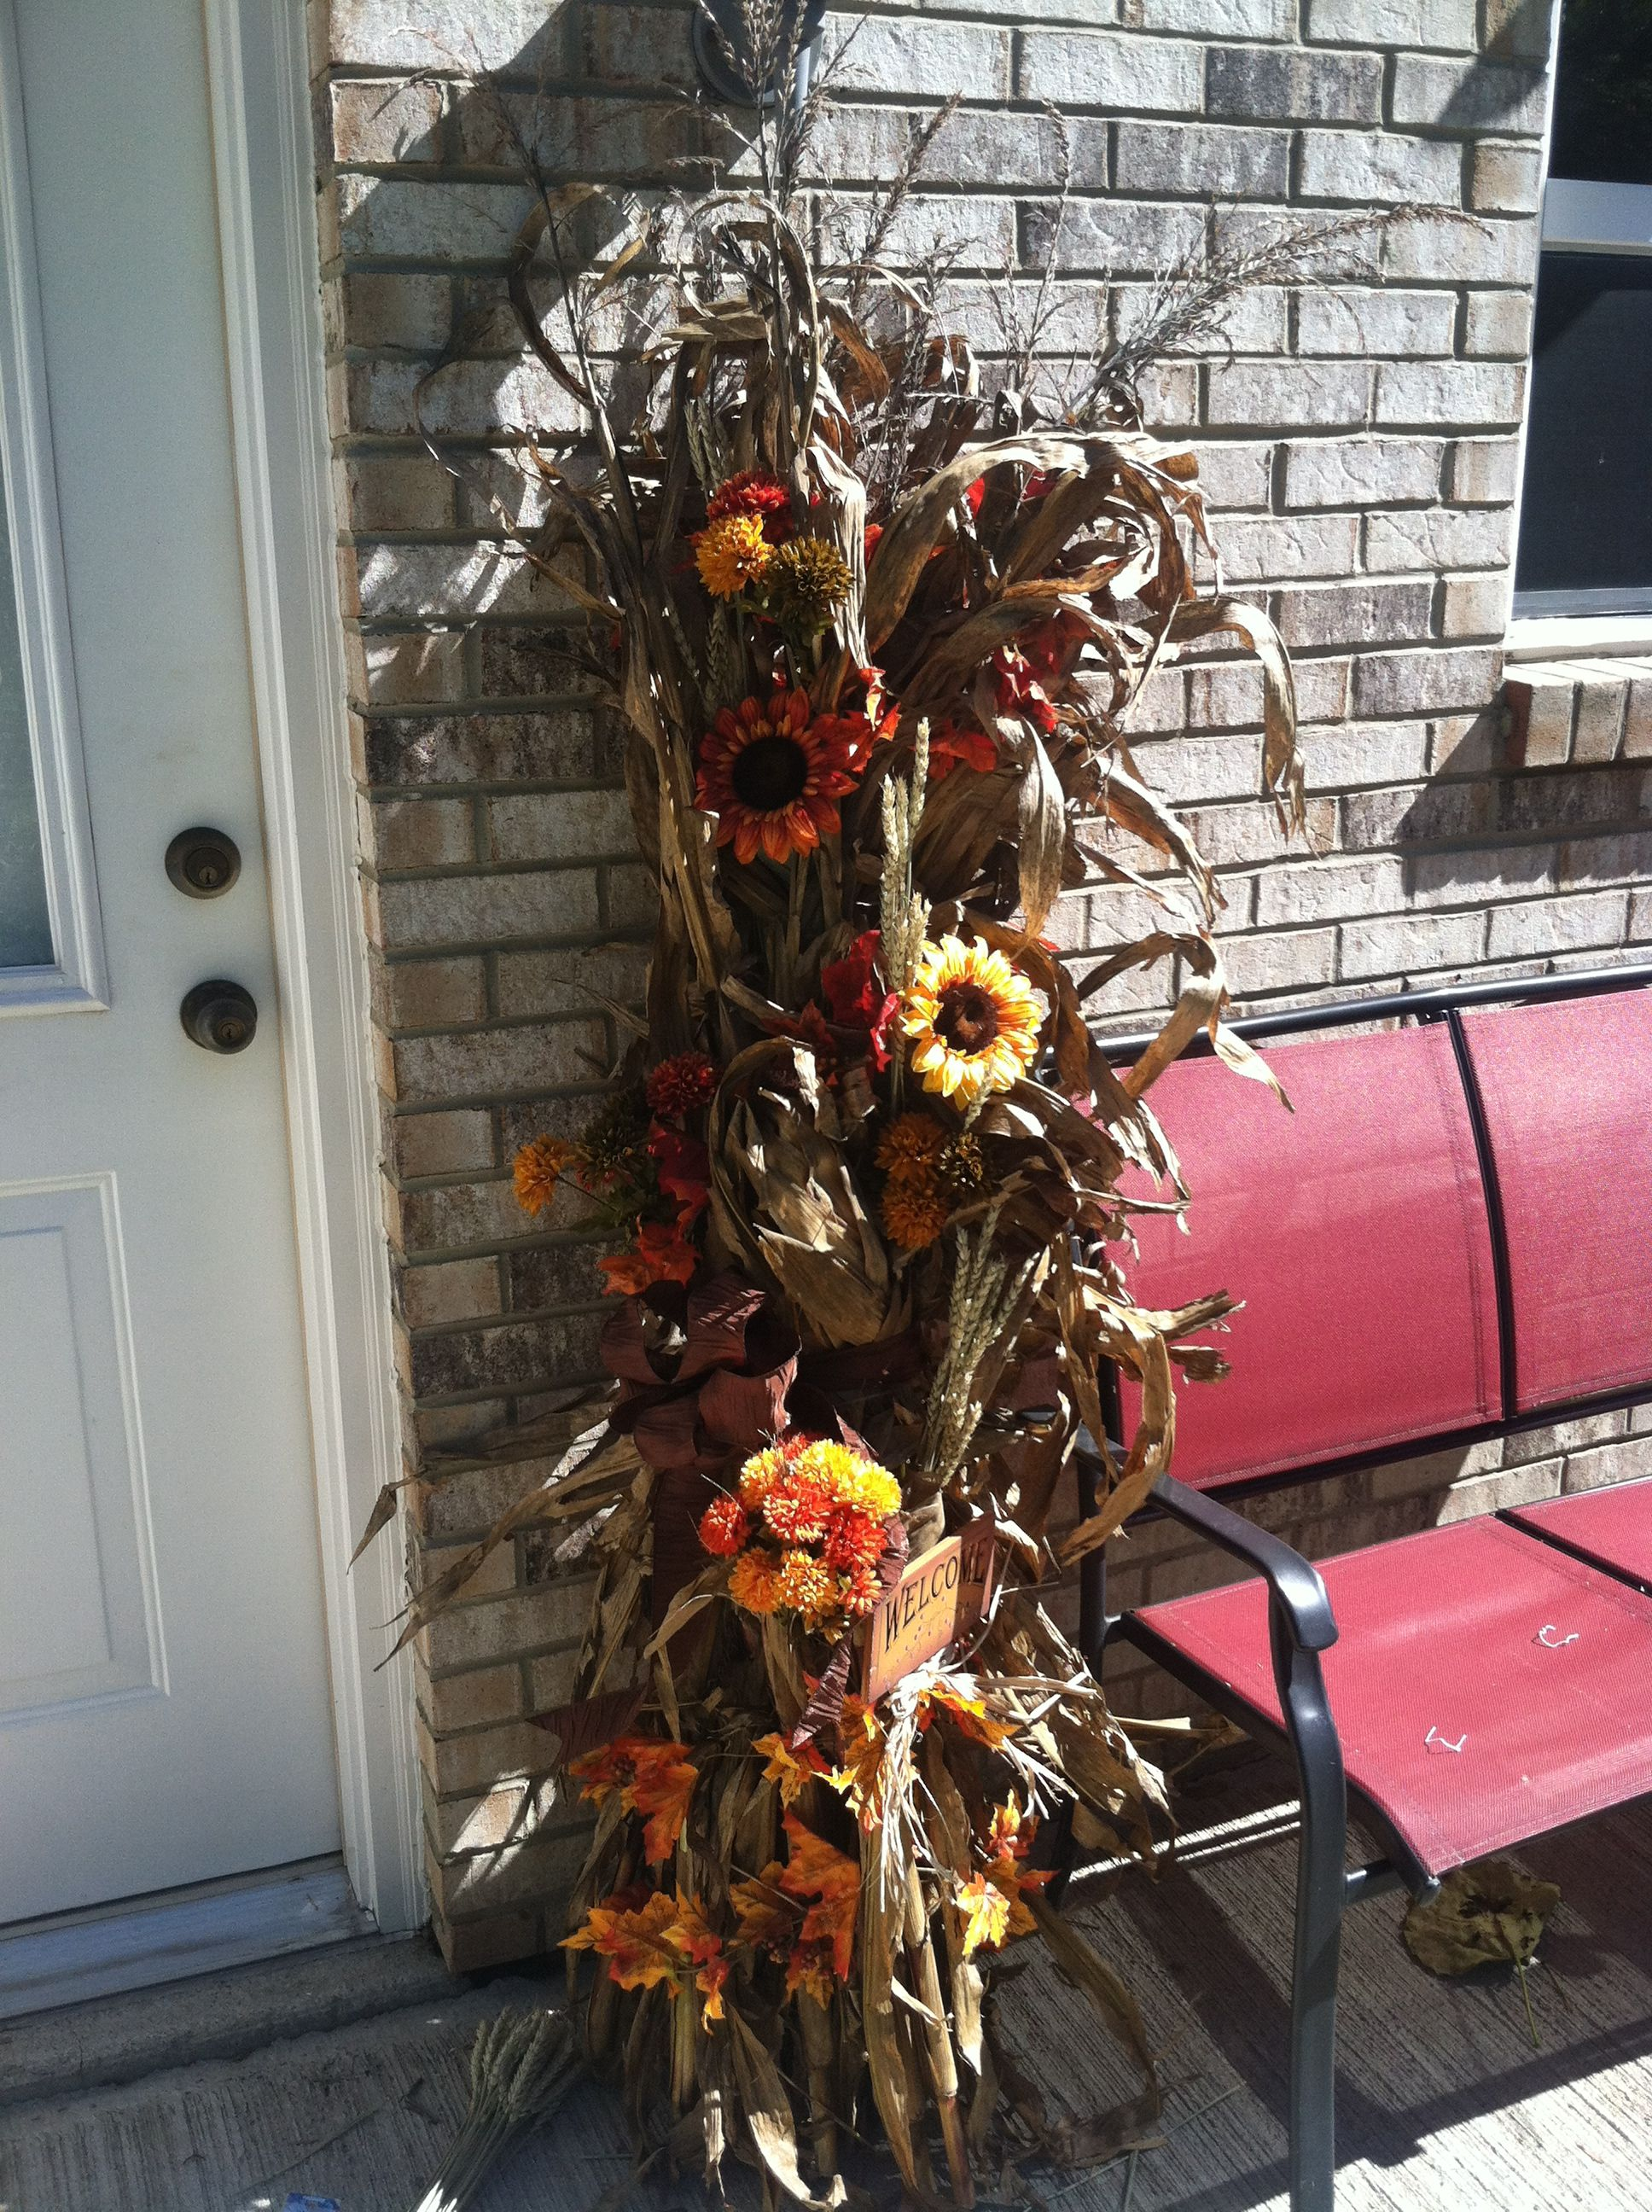 My Very Own Decorative Corn Stalk Took About 15 Minutes Fall Is